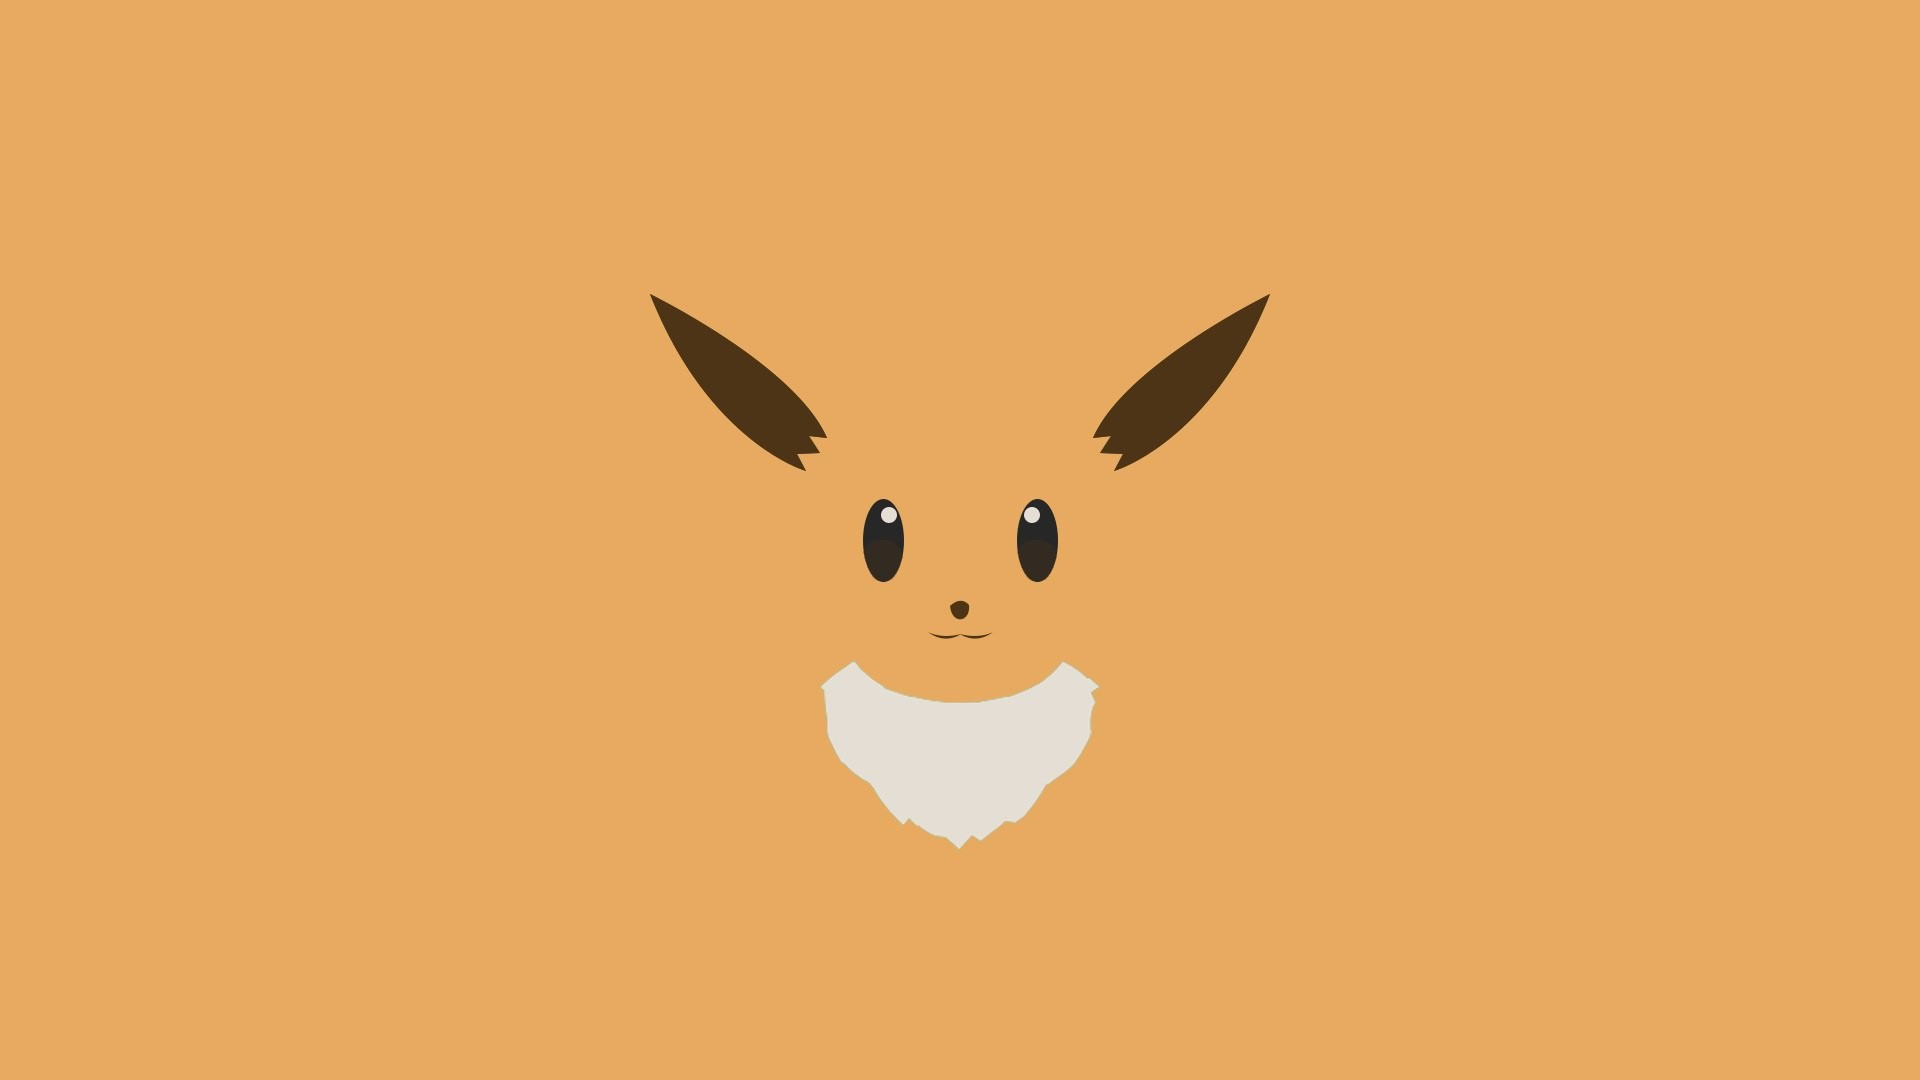 1920x1080 Pokemon/ Pokemon GO Design | Eevee Wallpaper